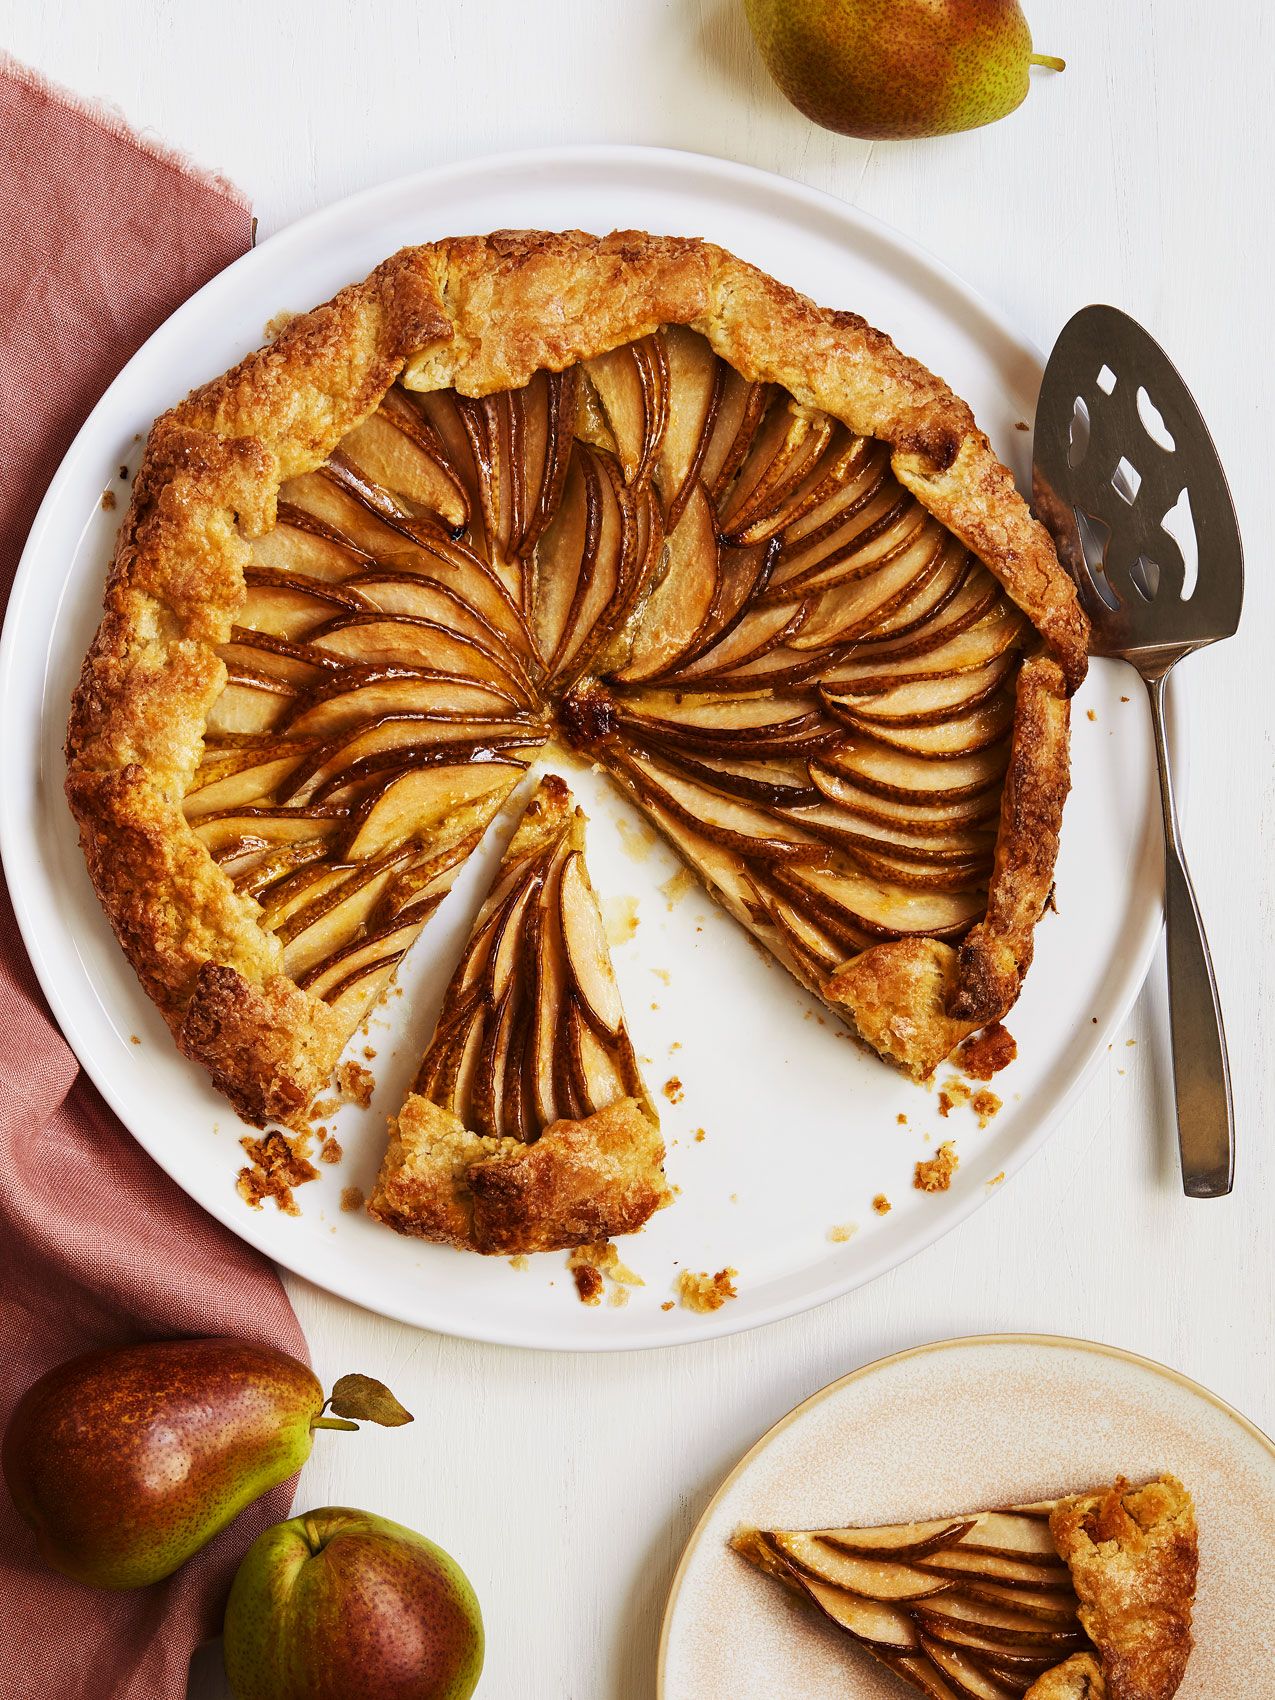 anise-pear-almond-galette_recipe_ty-mecham_tara-teaspoon